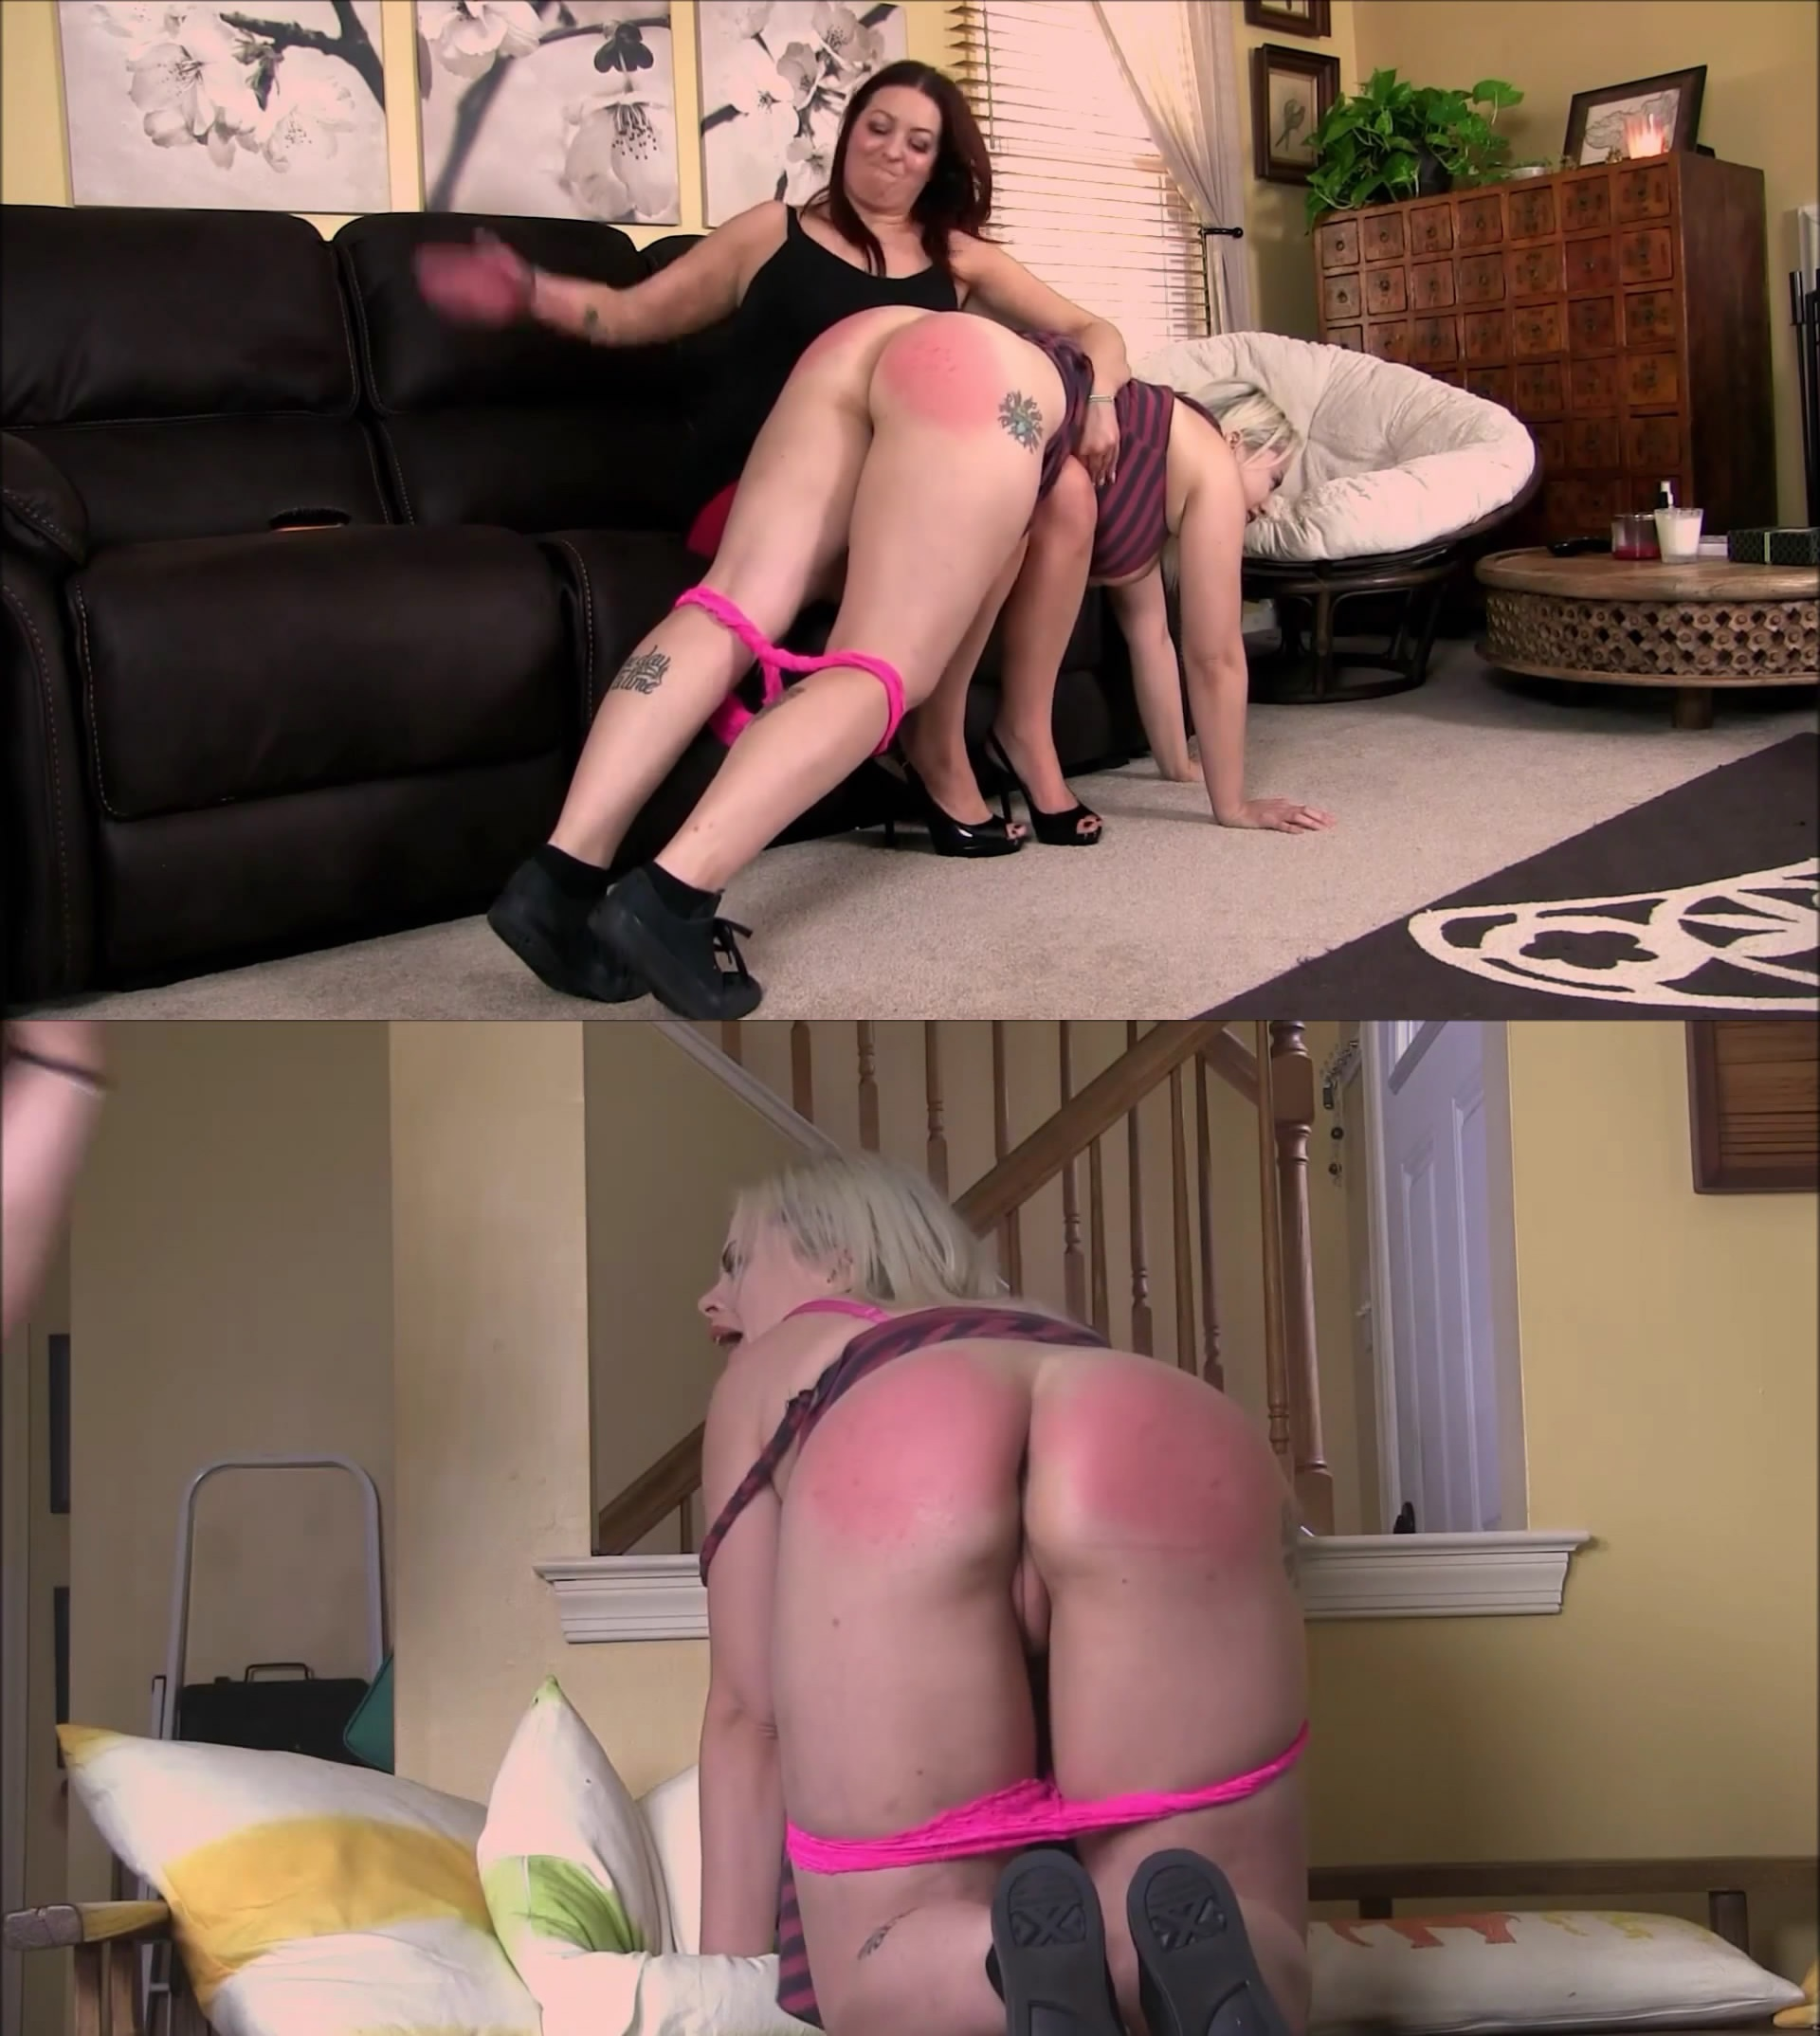 Punished Brats – MP4/Full HD – The Nadia and Skyler Improv Spanking Sessions Part 2 of 2